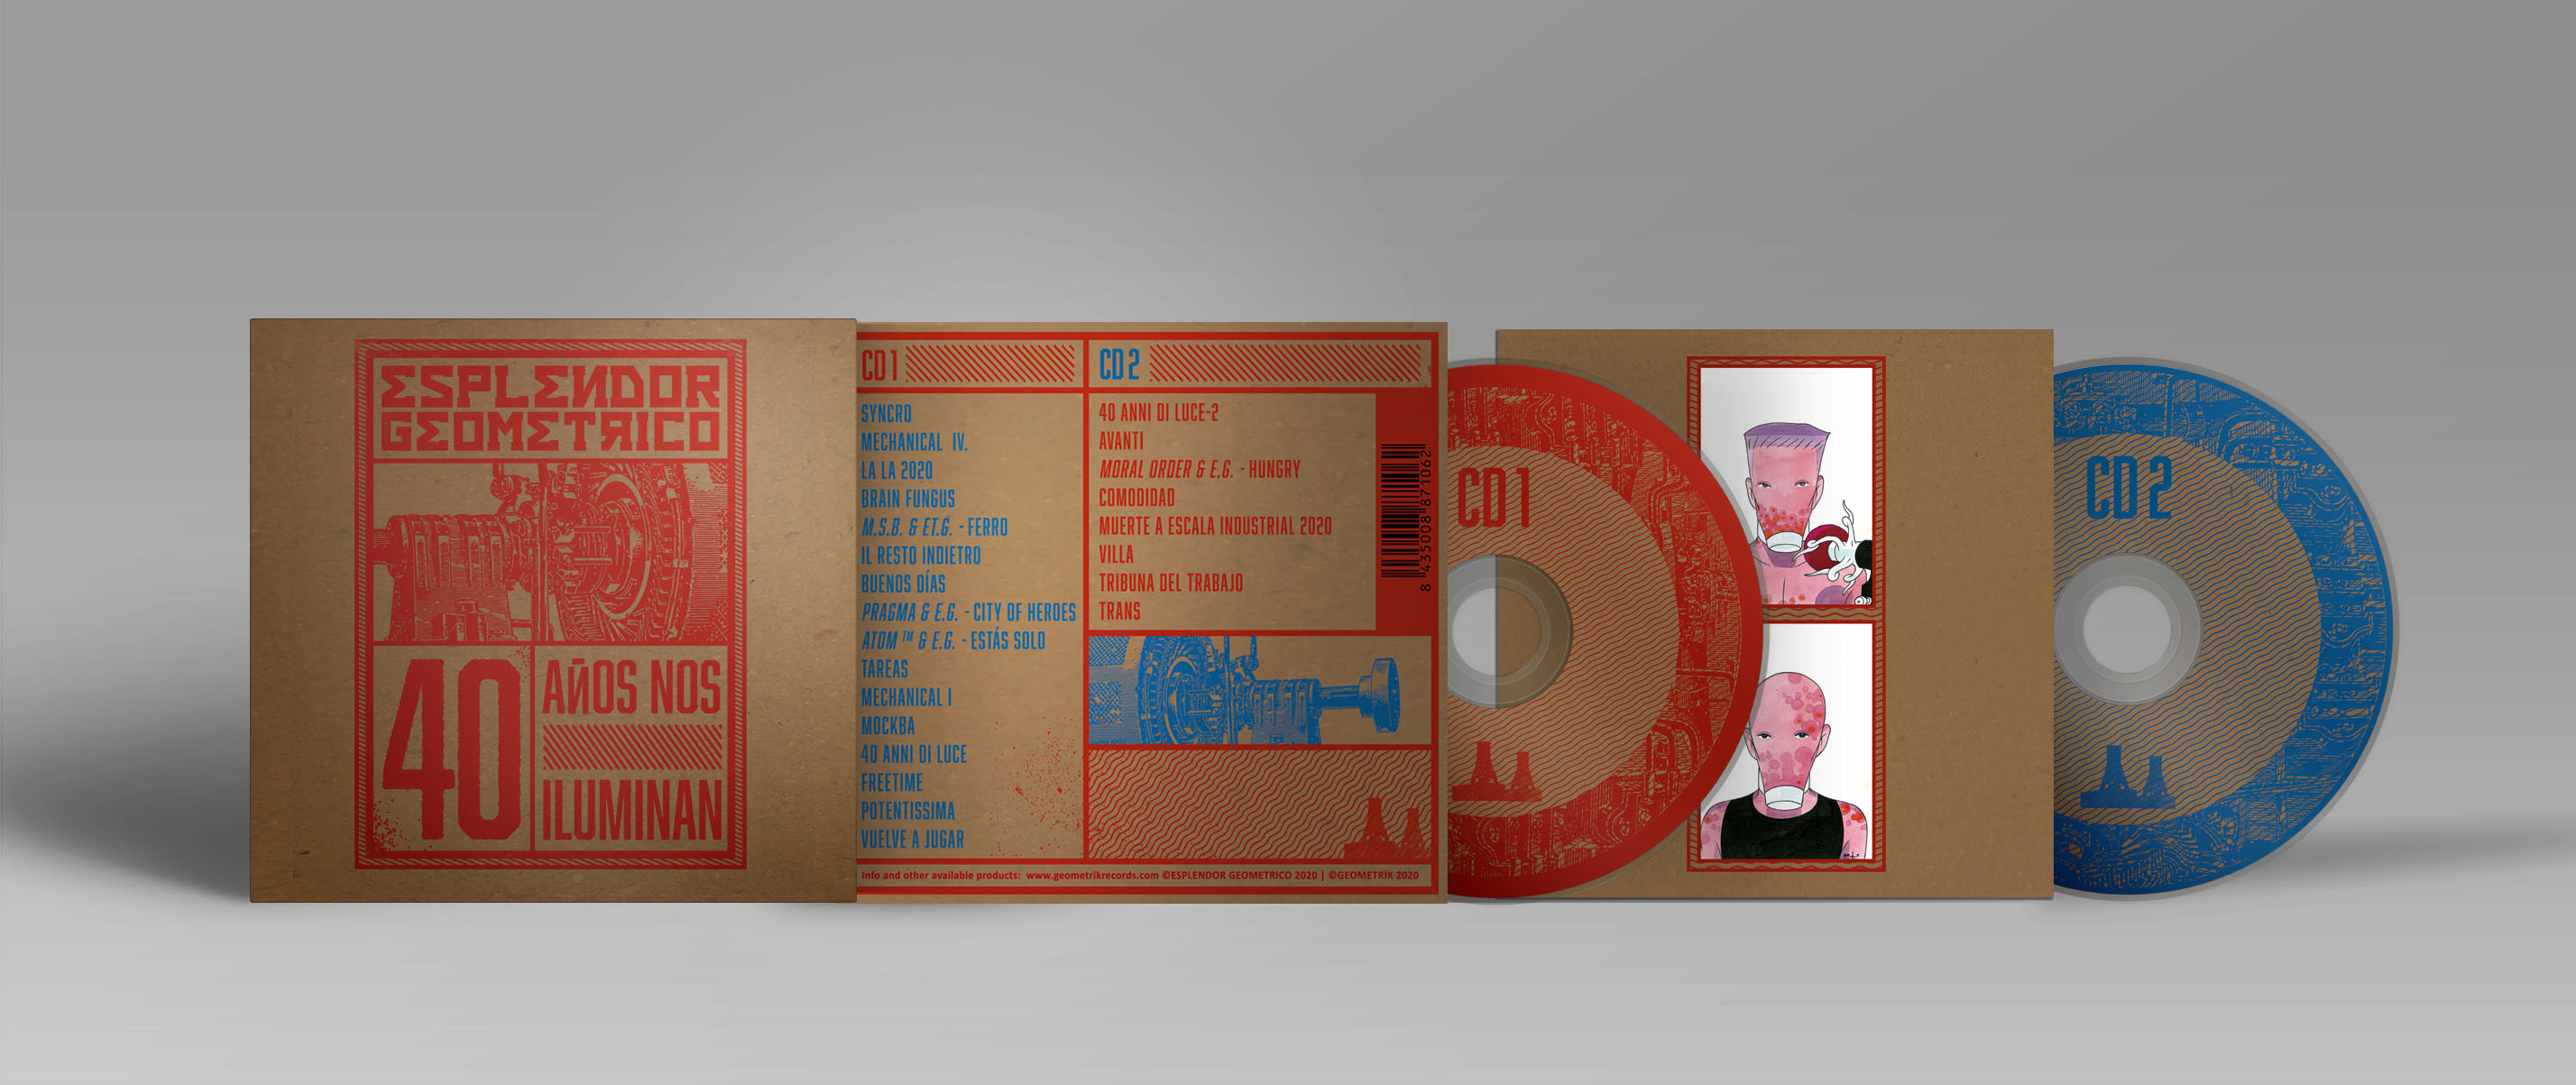 Doble CD desplegado